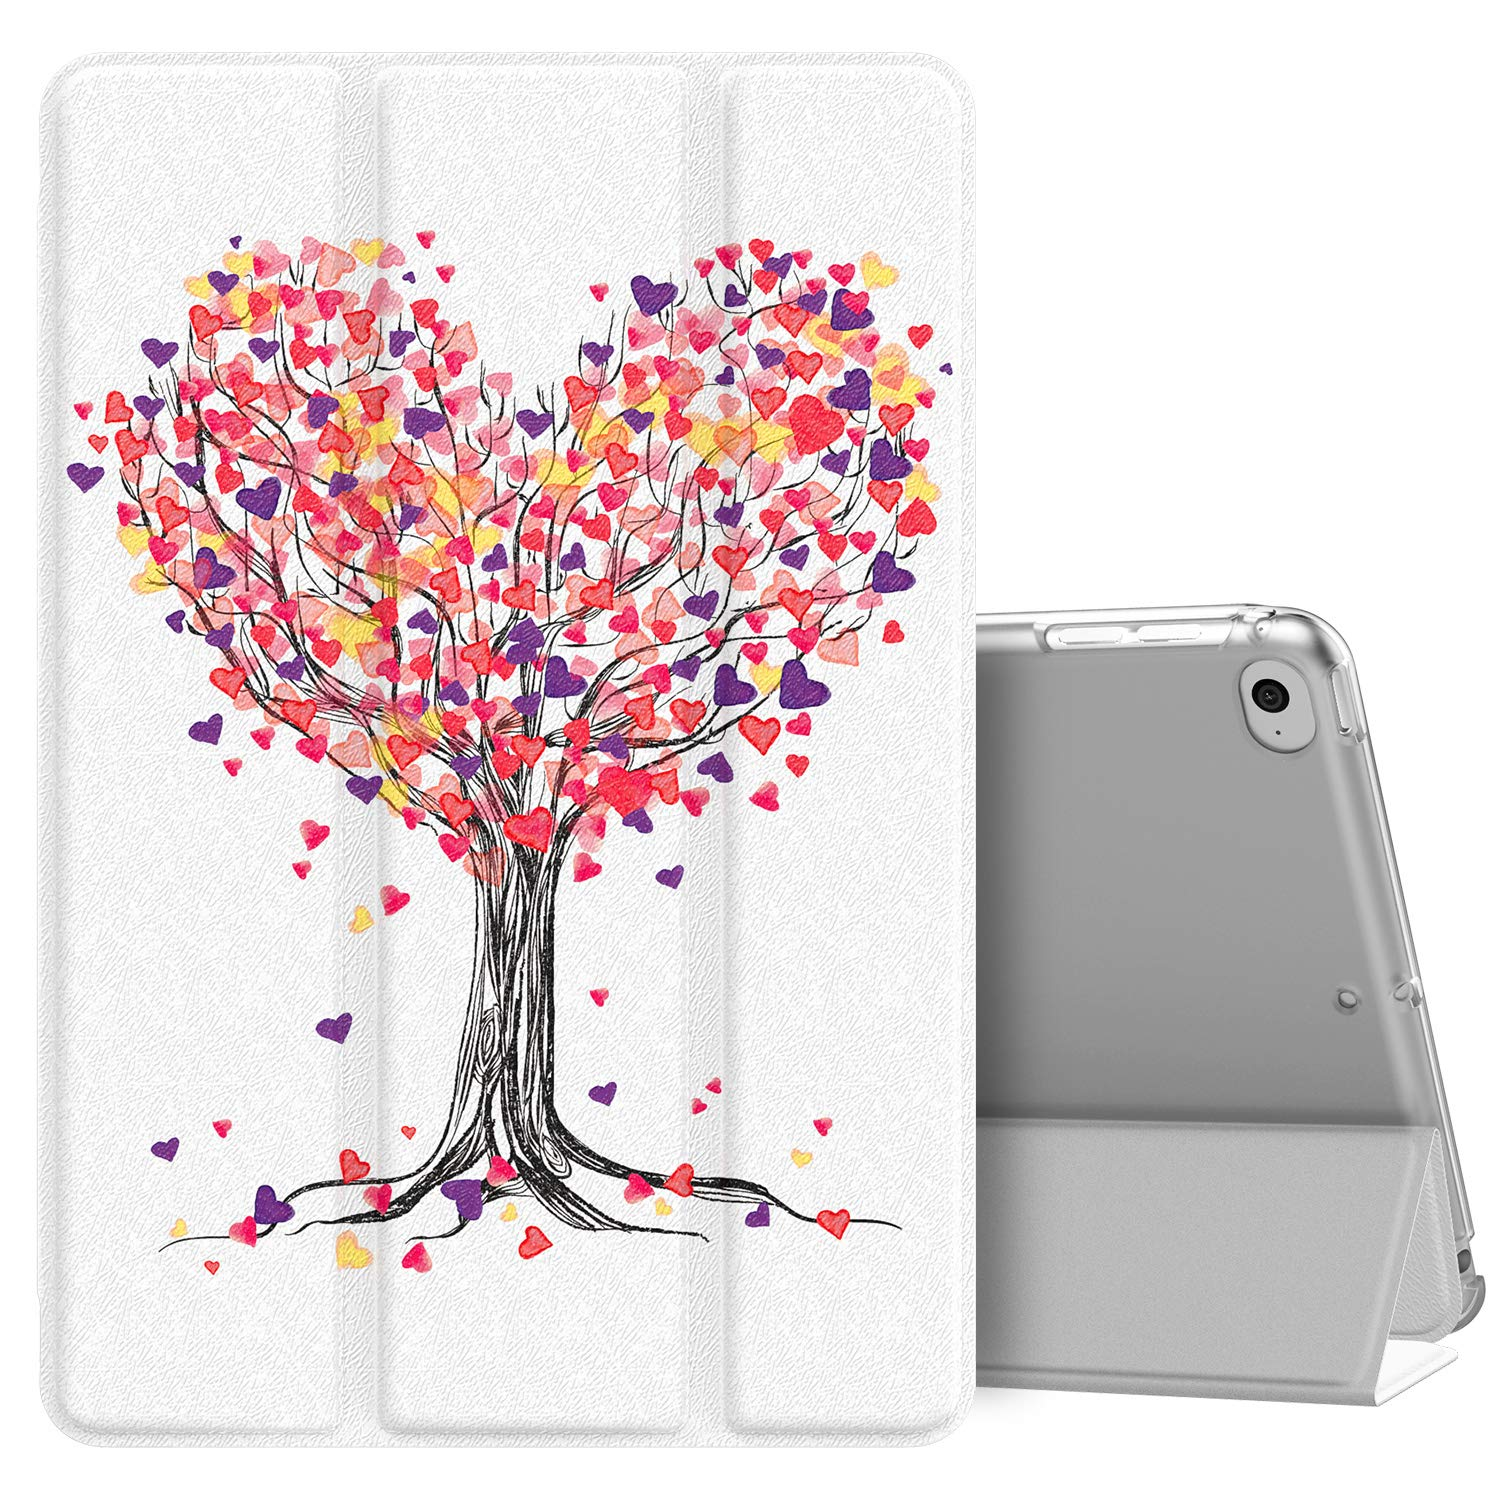 MoKo Case Fit New iPad Mini 5 2019 (5th Generation 7.9 inch), Slim Lightweight Smart Shell Stand Cover with Translucent Frosted Back Protector, with Auto Wake/Sleep - Love Tree